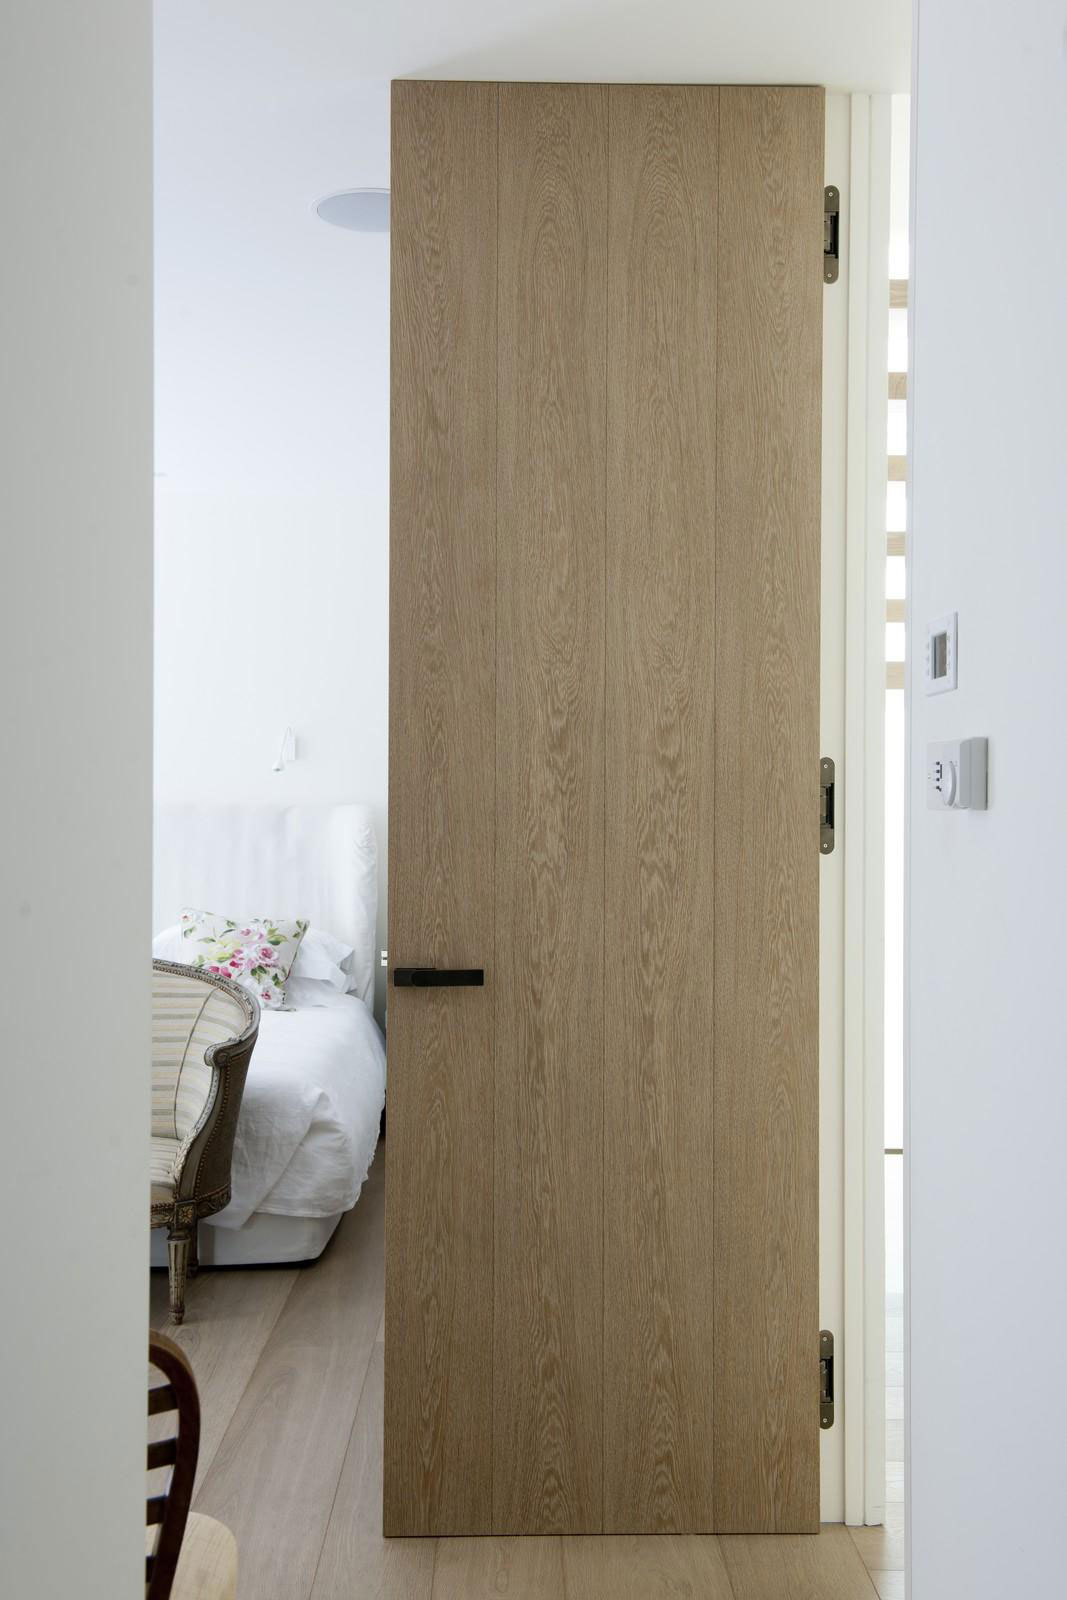 Mews 04 by Andy Martin Architects (12)